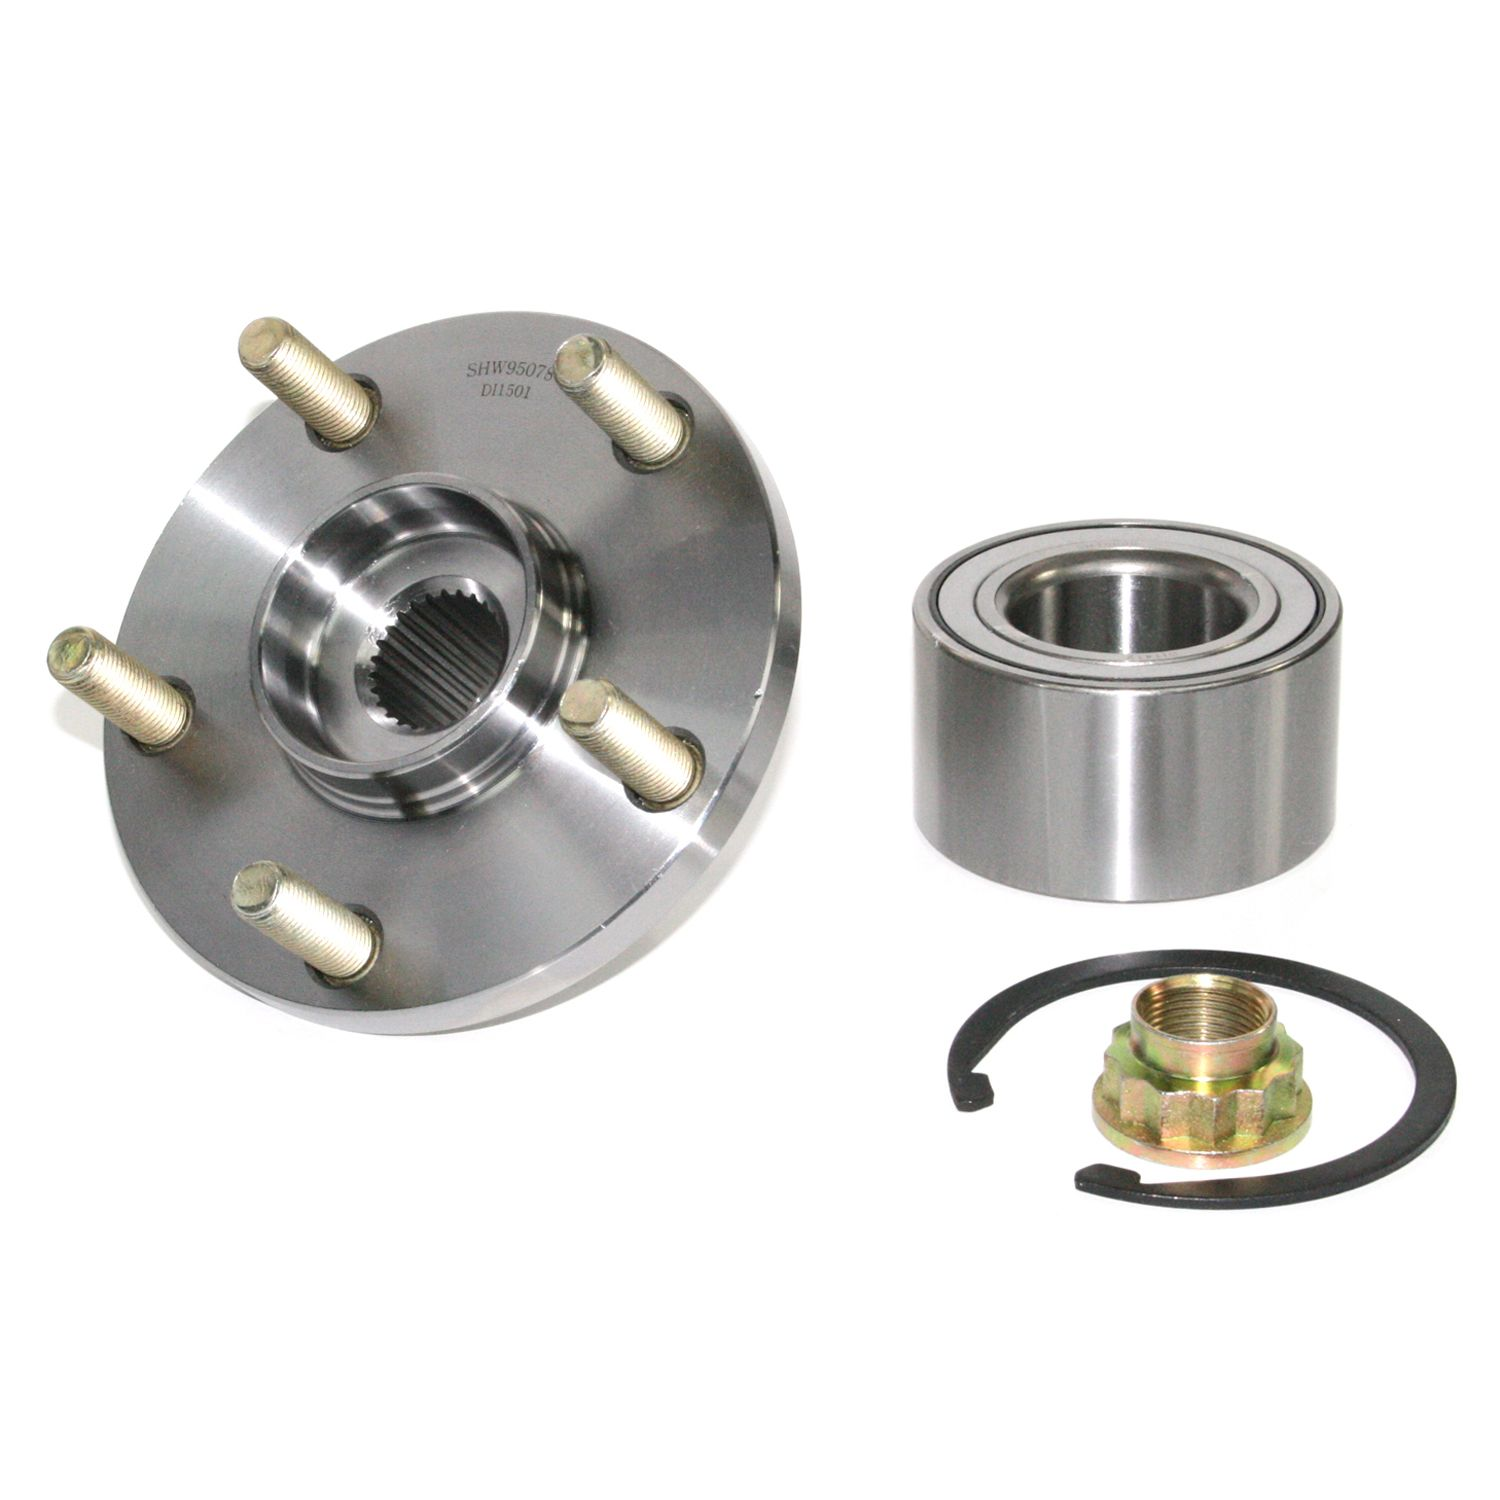 Toyota Rav4 Wheel Hub Repair Kit Replacement Pronto Go Parts 2001 Front 295 96077 This Contains Bearing Retaining Ring And Axle Nut